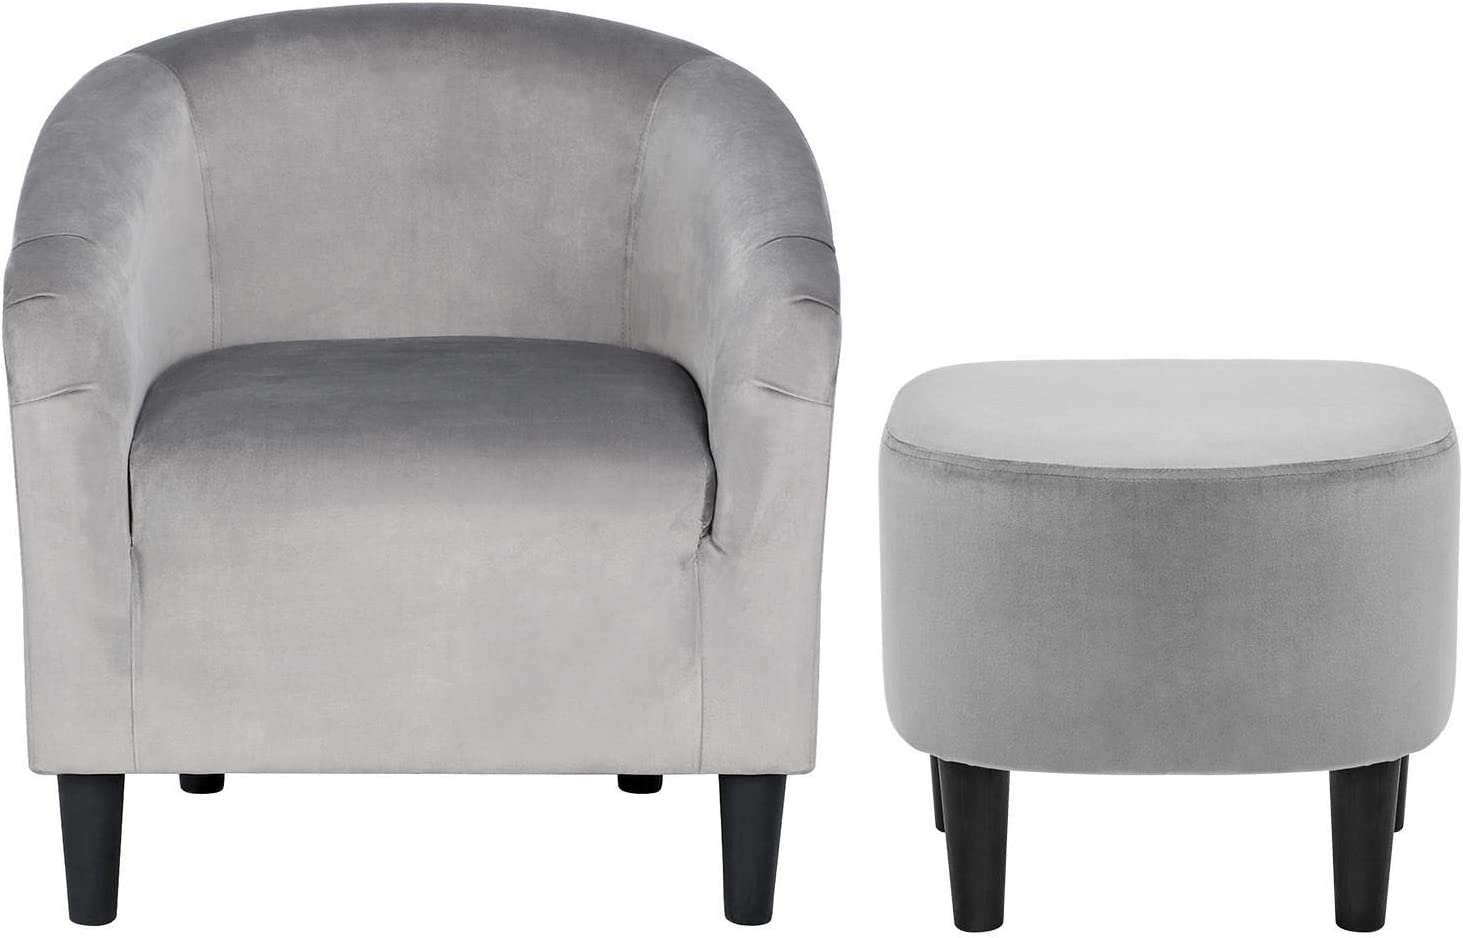 YAHEETECH Contemporary Club Chair for Living Room Accent Arm Chair Tub Chair Upholstered Barrel Chair and Ottoman Set for Living Room Guestroom Bedroom : Home & Kitchen